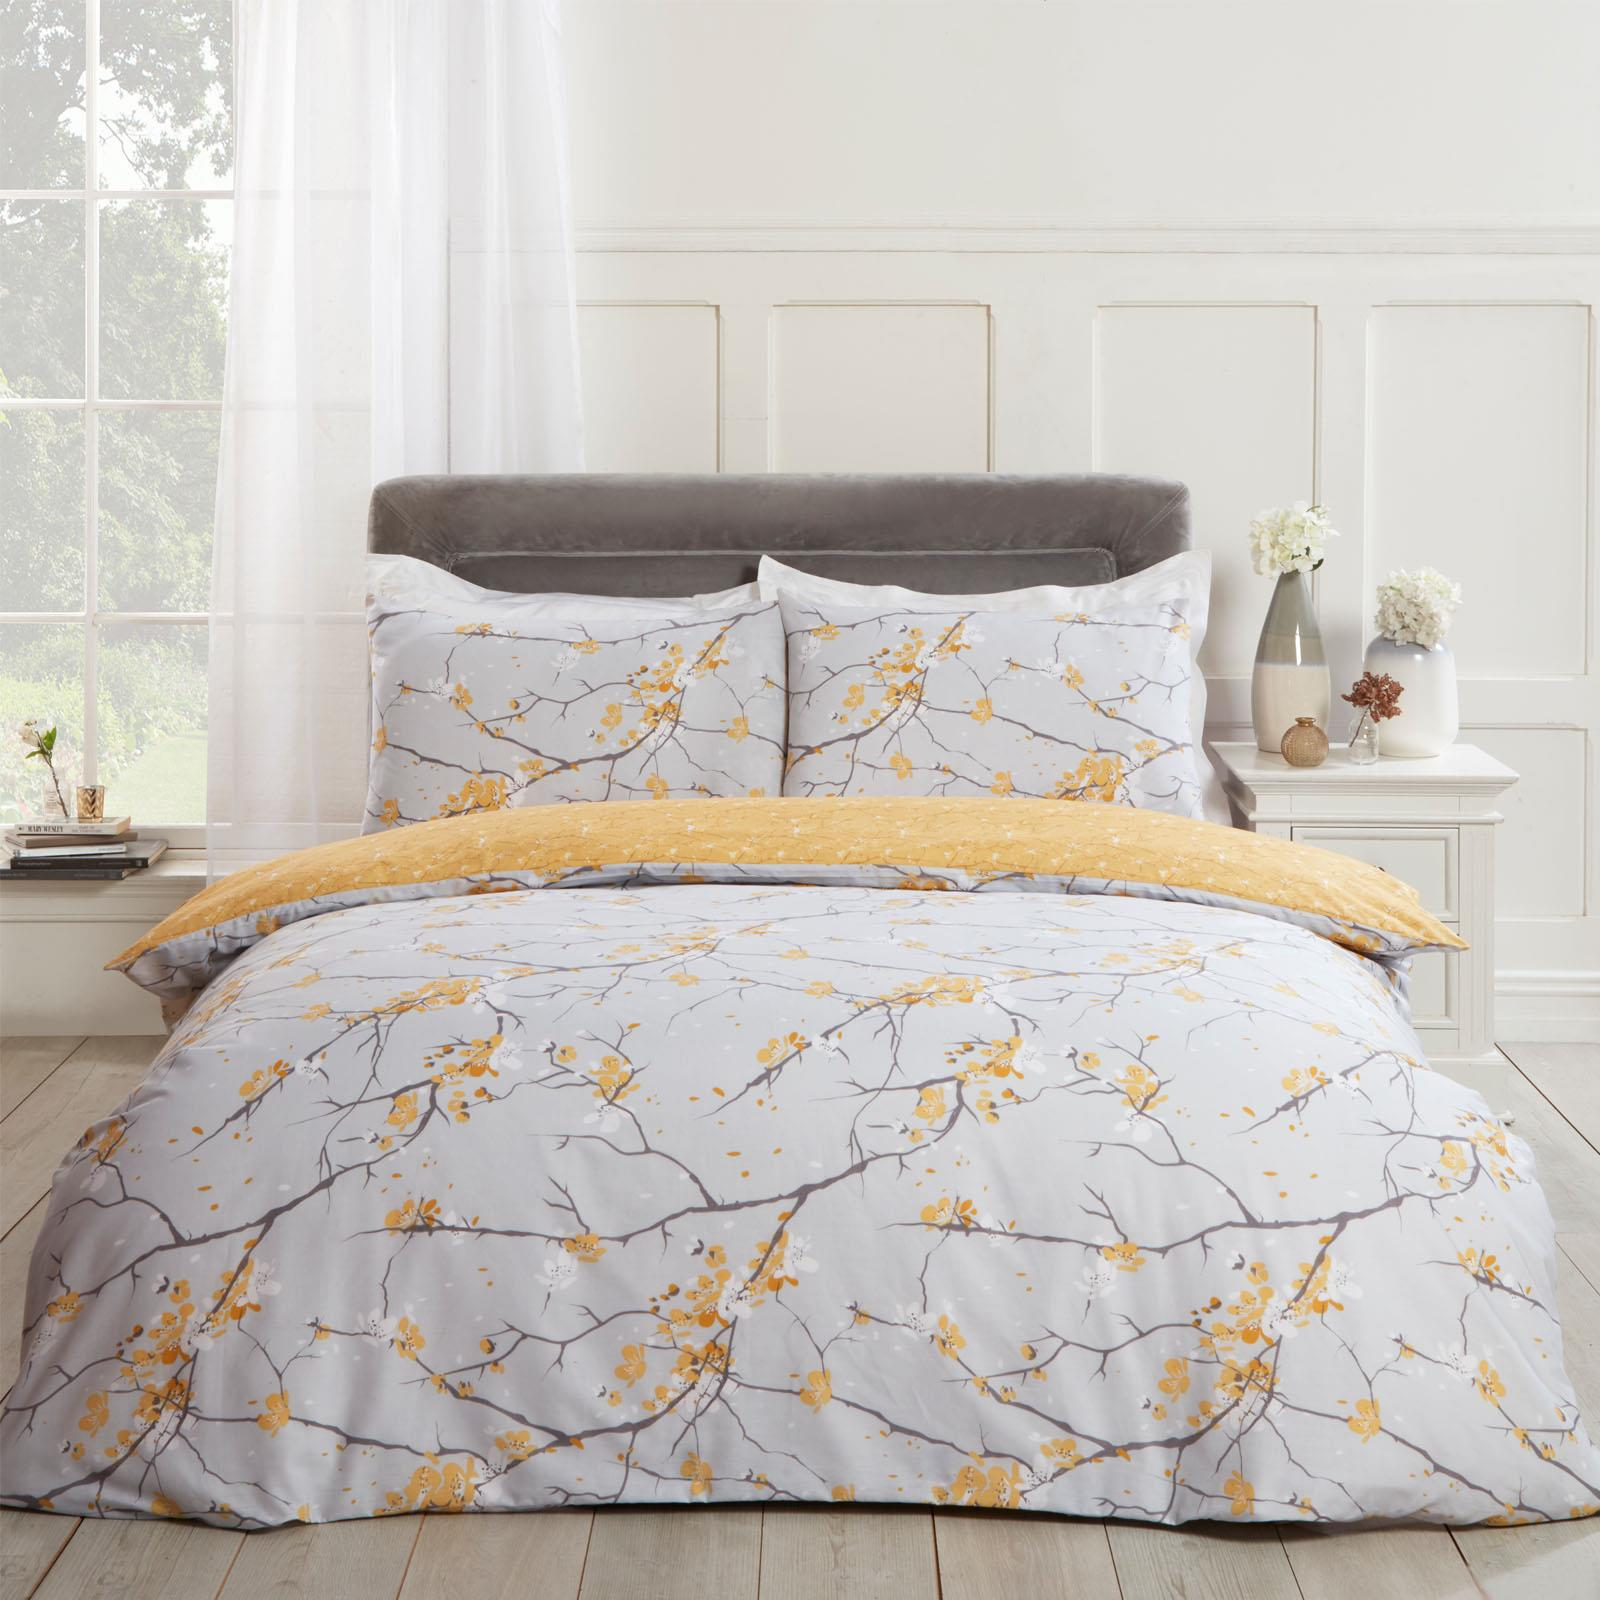 thumbnail 19 - Dreamscene Spring Blossoms Duvet Cover with Pillowcases Bedding Set Blush Ochre